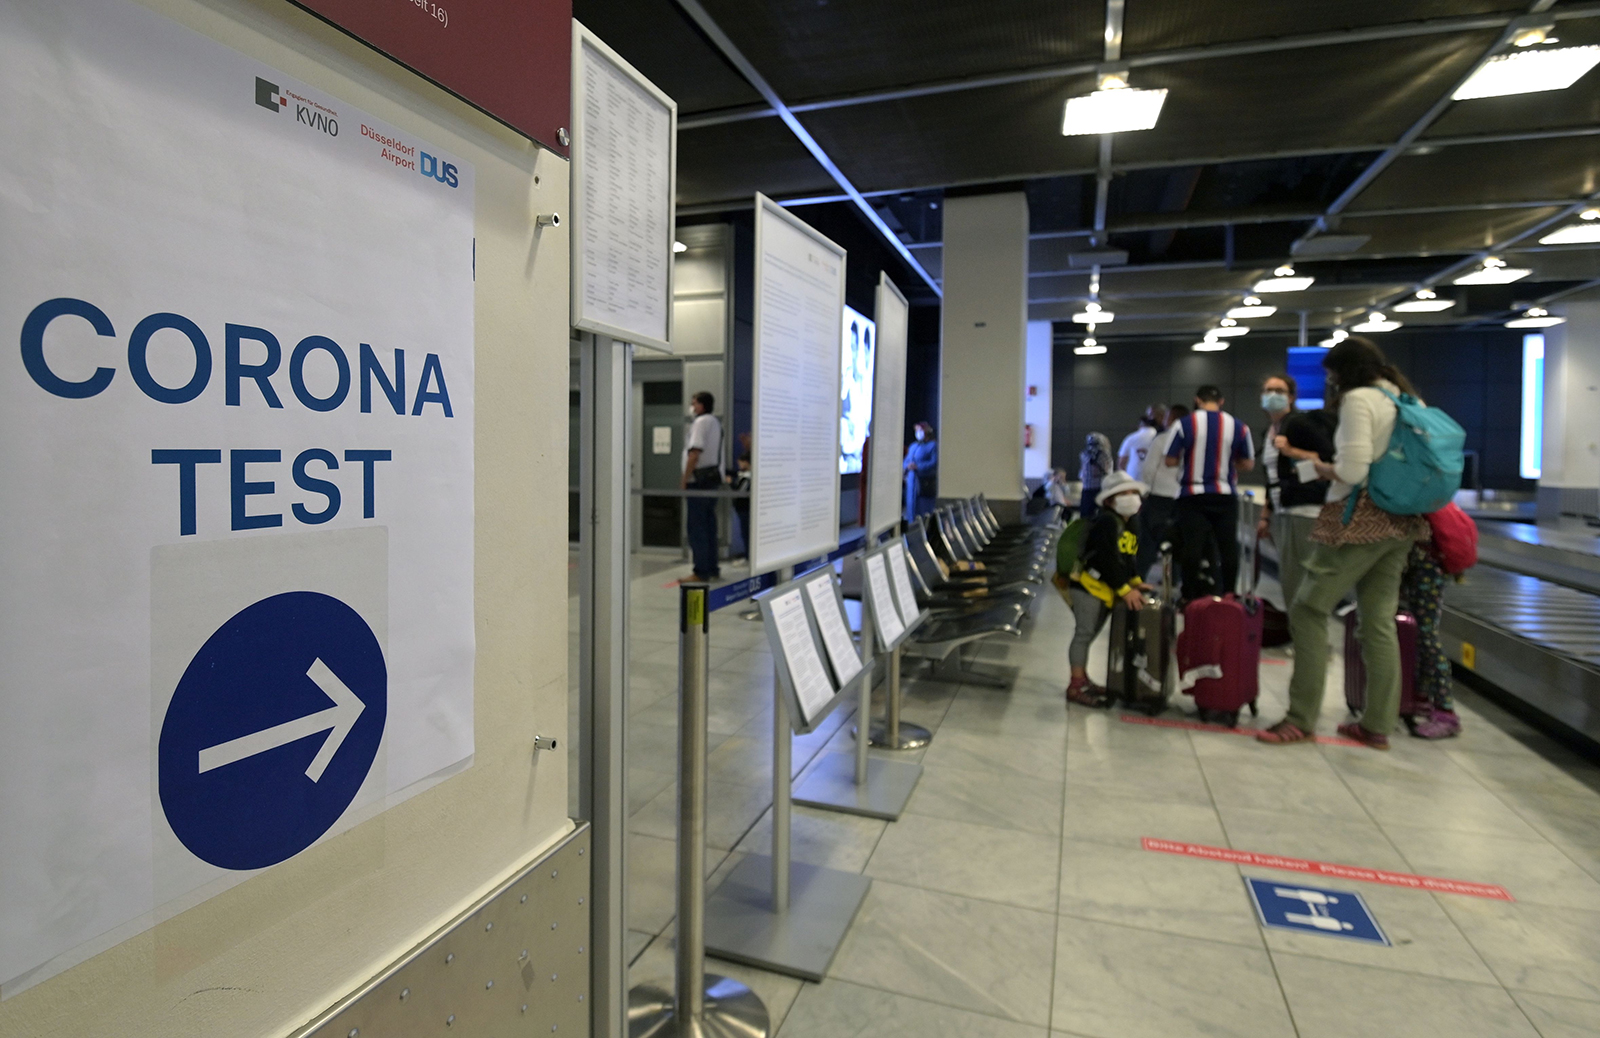 A sign directs traffic to a coronavirus screening station in the medical center of the airport in Duesseldorf, western Germany, on Monday, July 27.